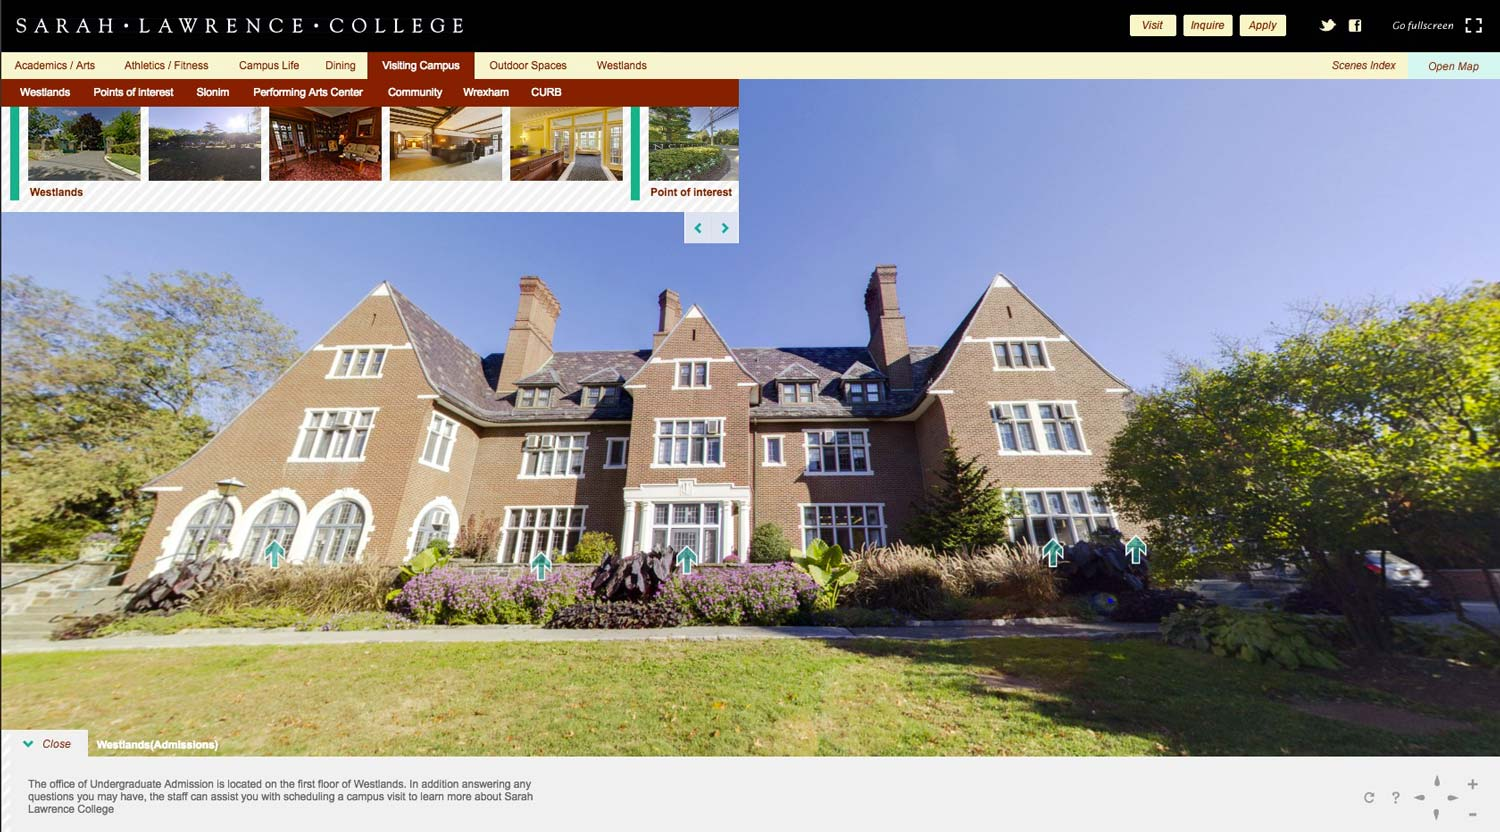 Sarah Lawrence College 360 Virtual Tour